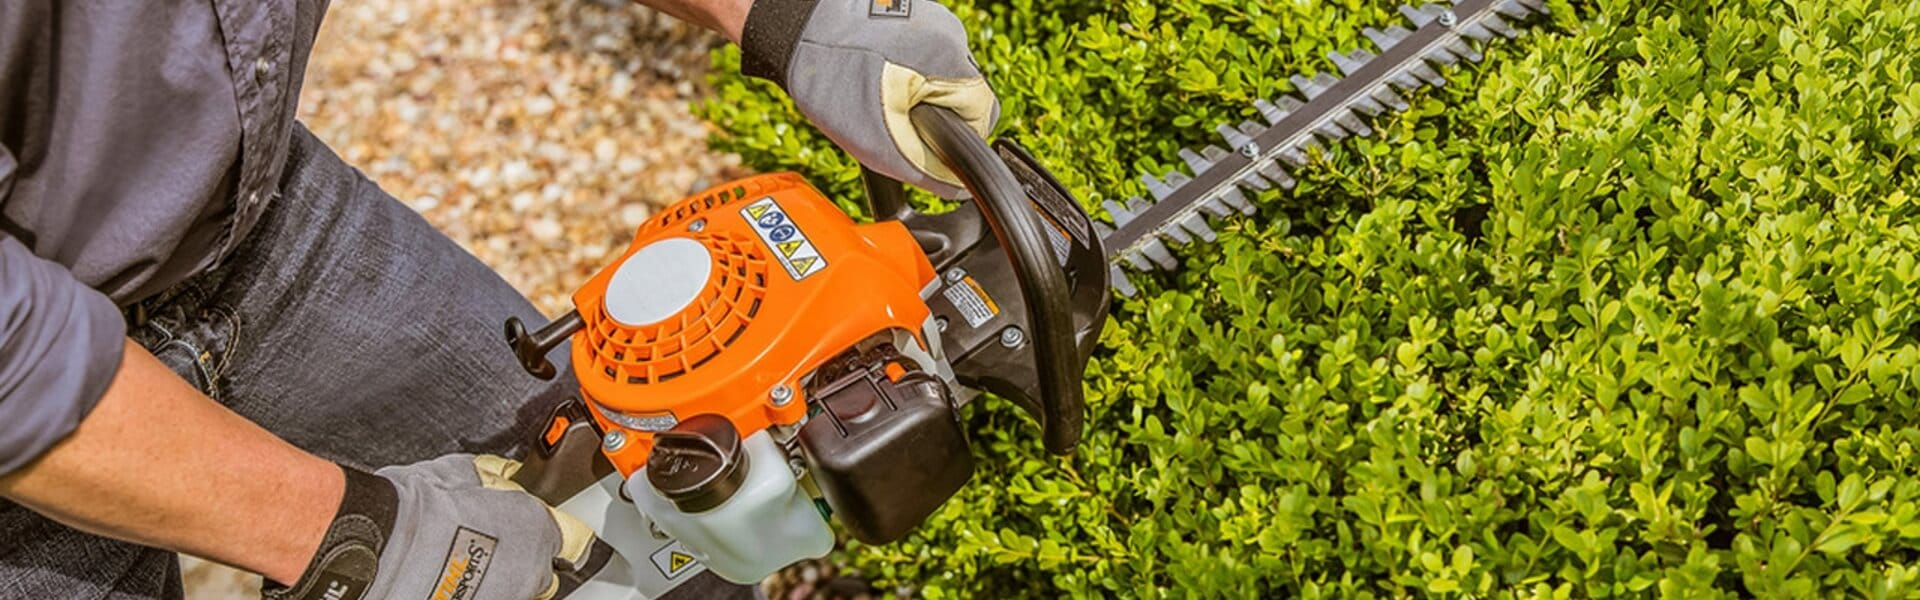 6 Best Hedge Trimmers – Make Hedge Trimming Fun